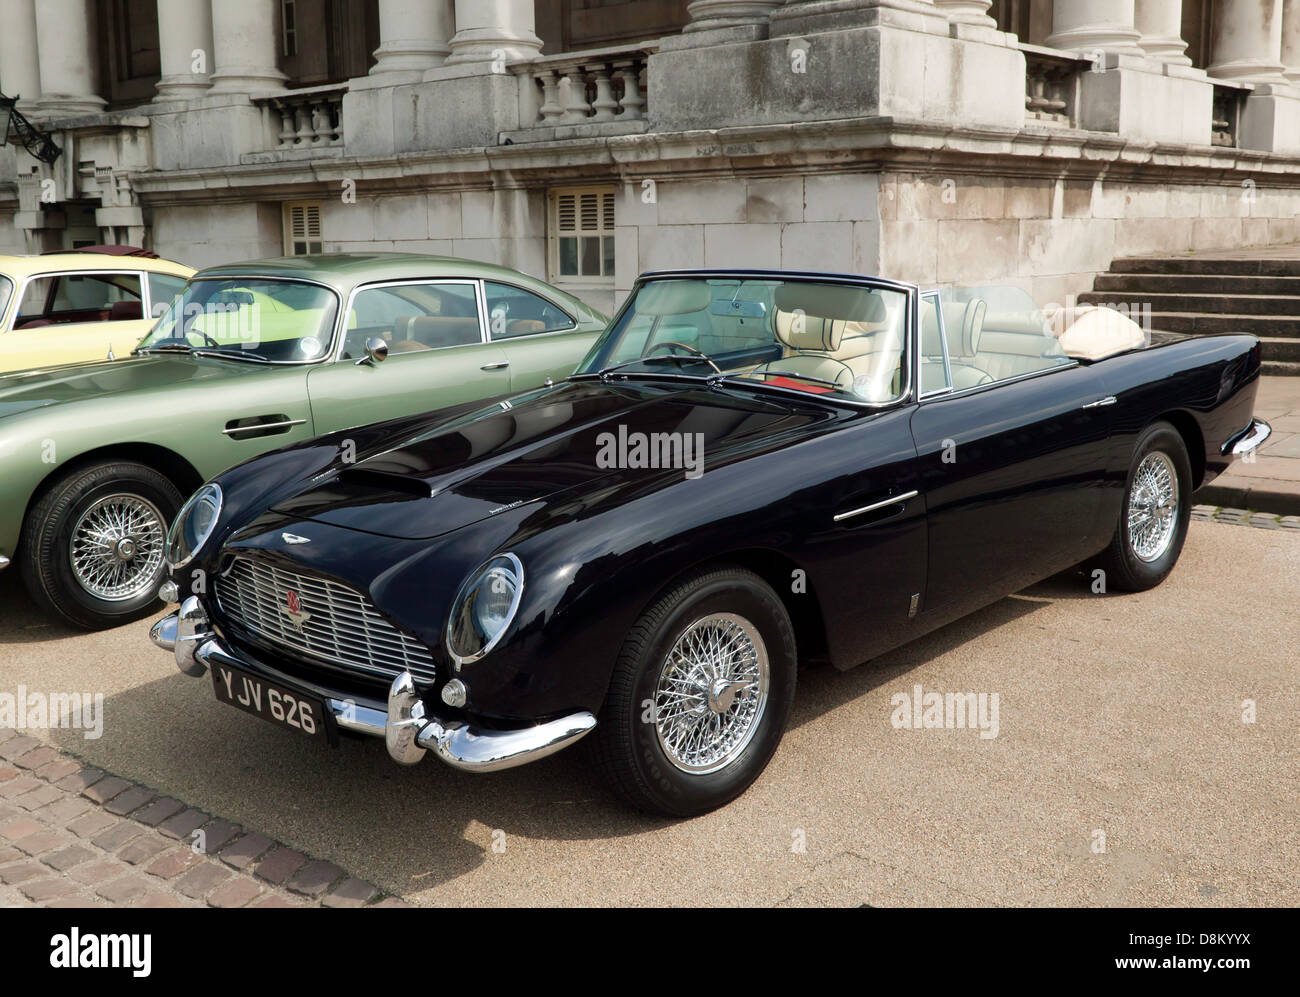 A beautiful, rare, black Aston Martin DB5 convertible on display ...